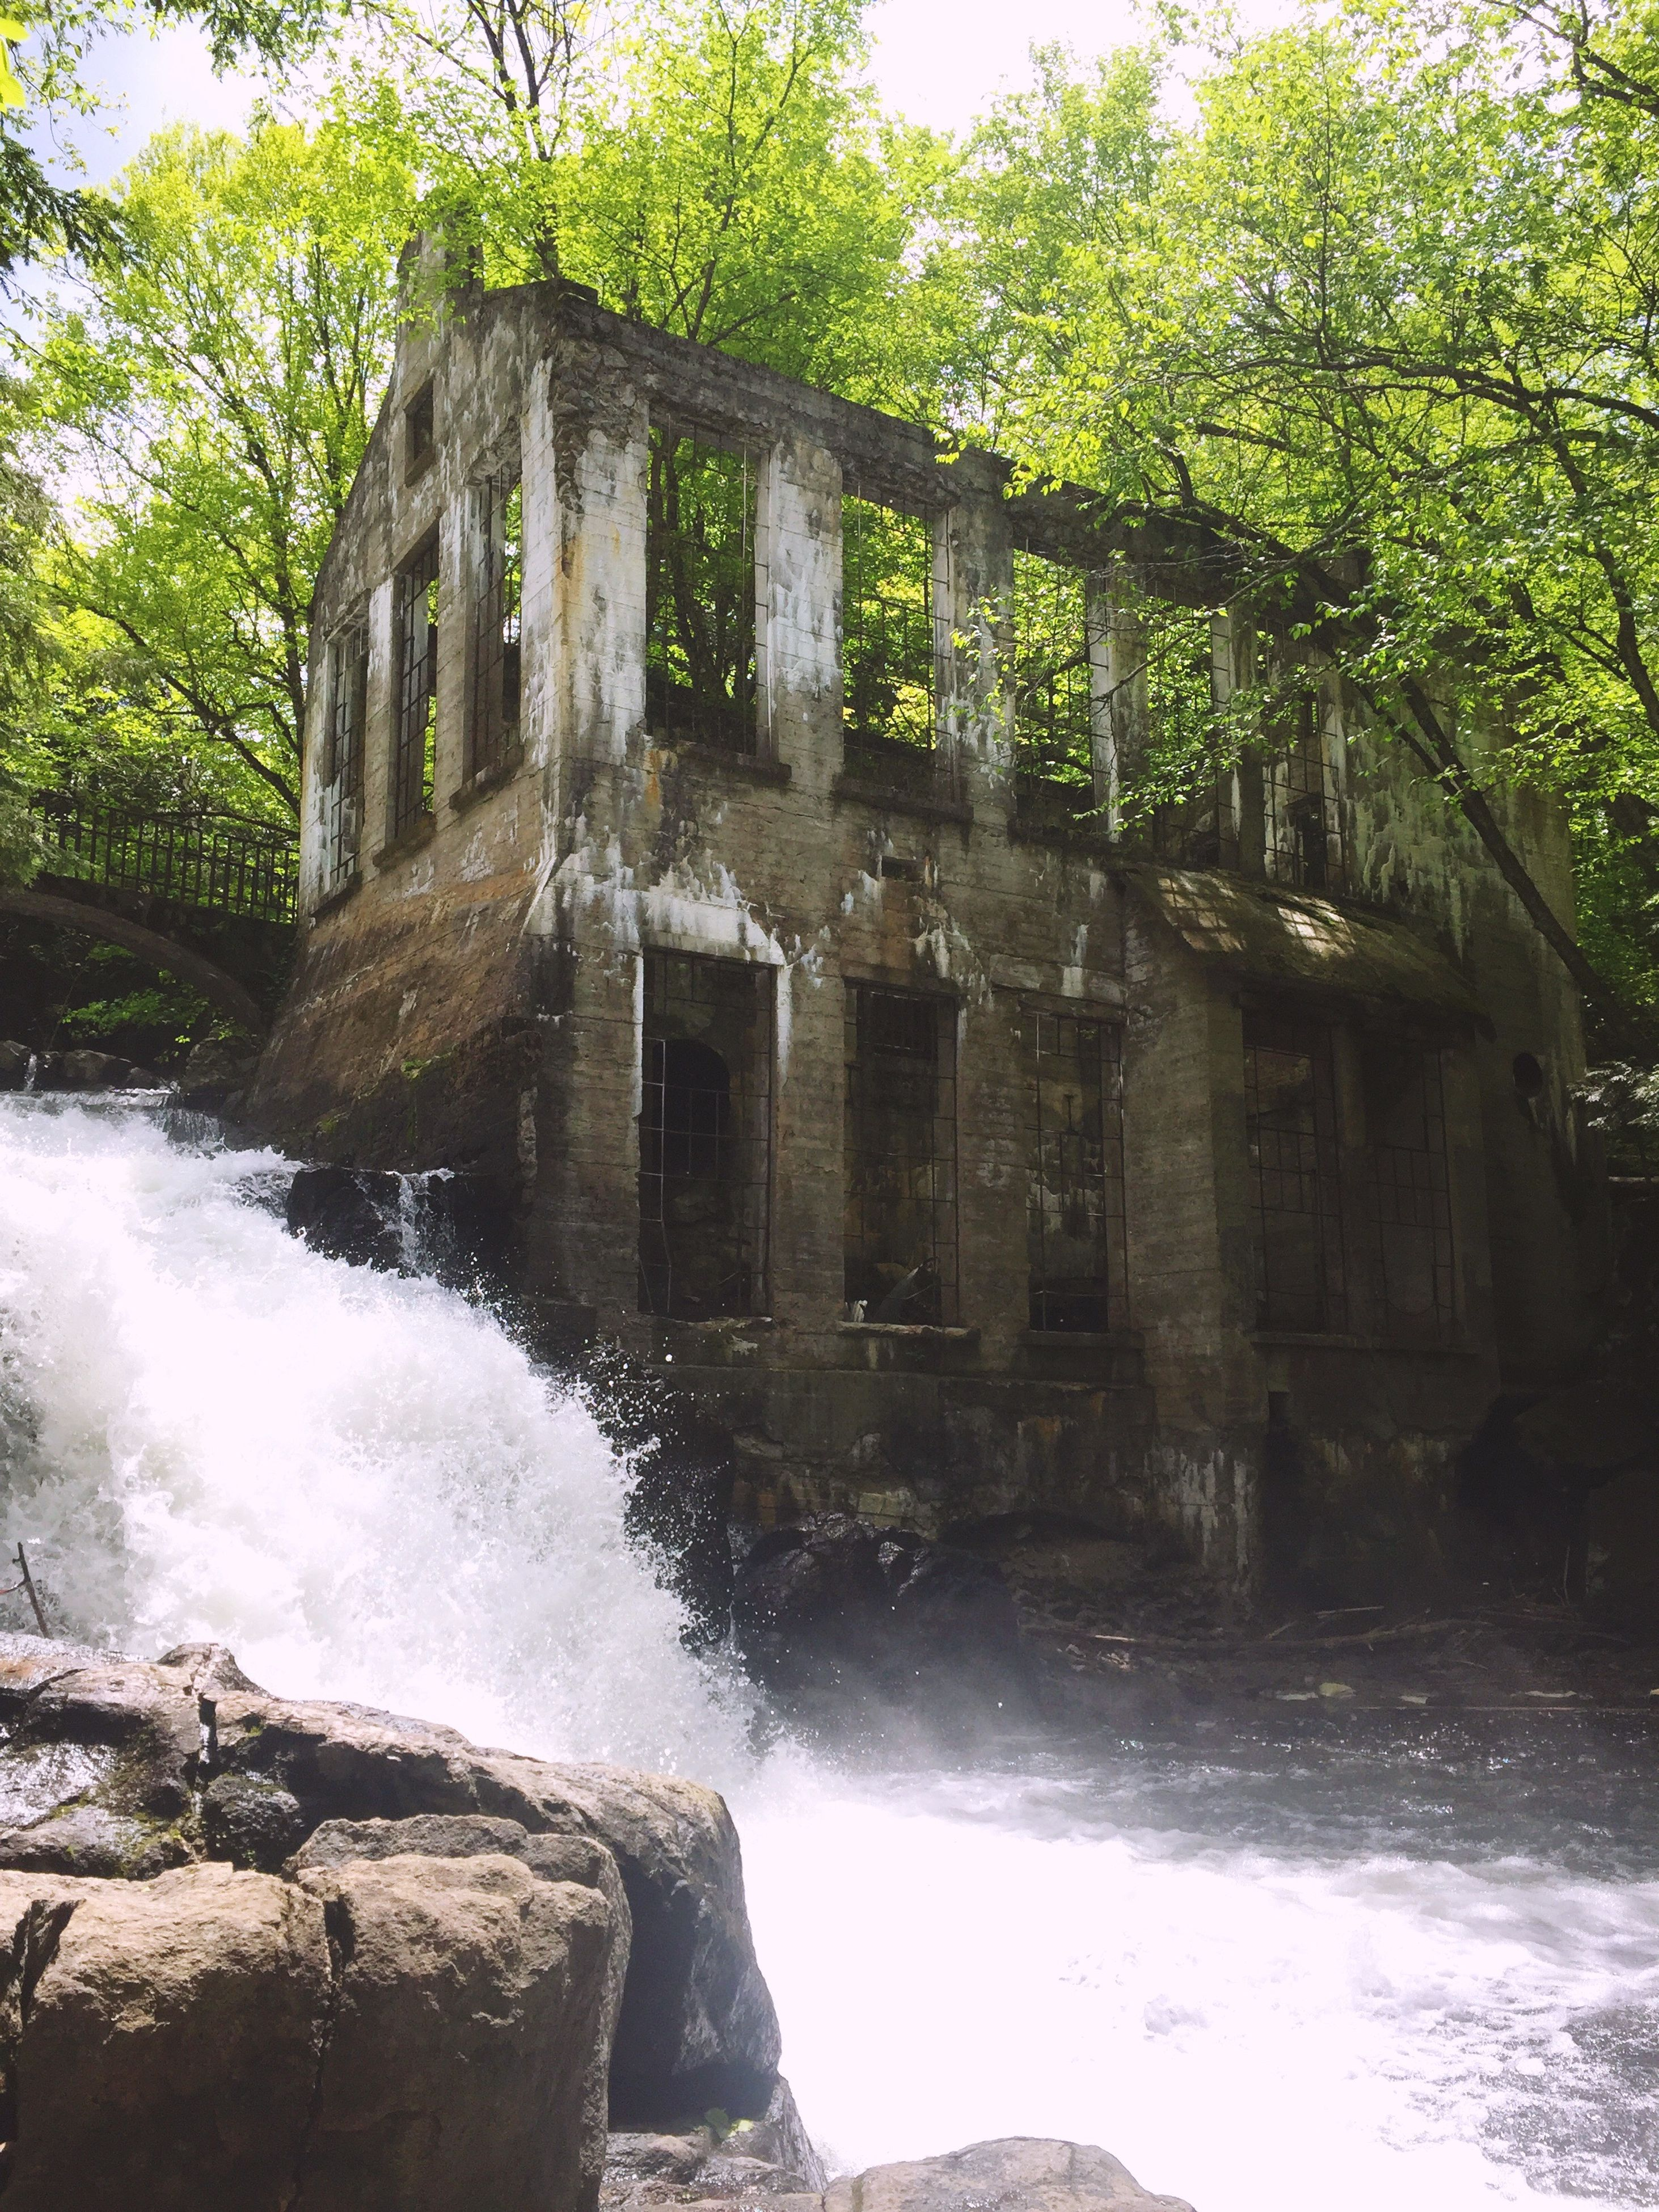 water, motion, waterfall, tree, nature, day, long exposure, outdoors, rock - object, built structure, no people, architecture, beauty in nature, travel destinations, scenics, building exterior